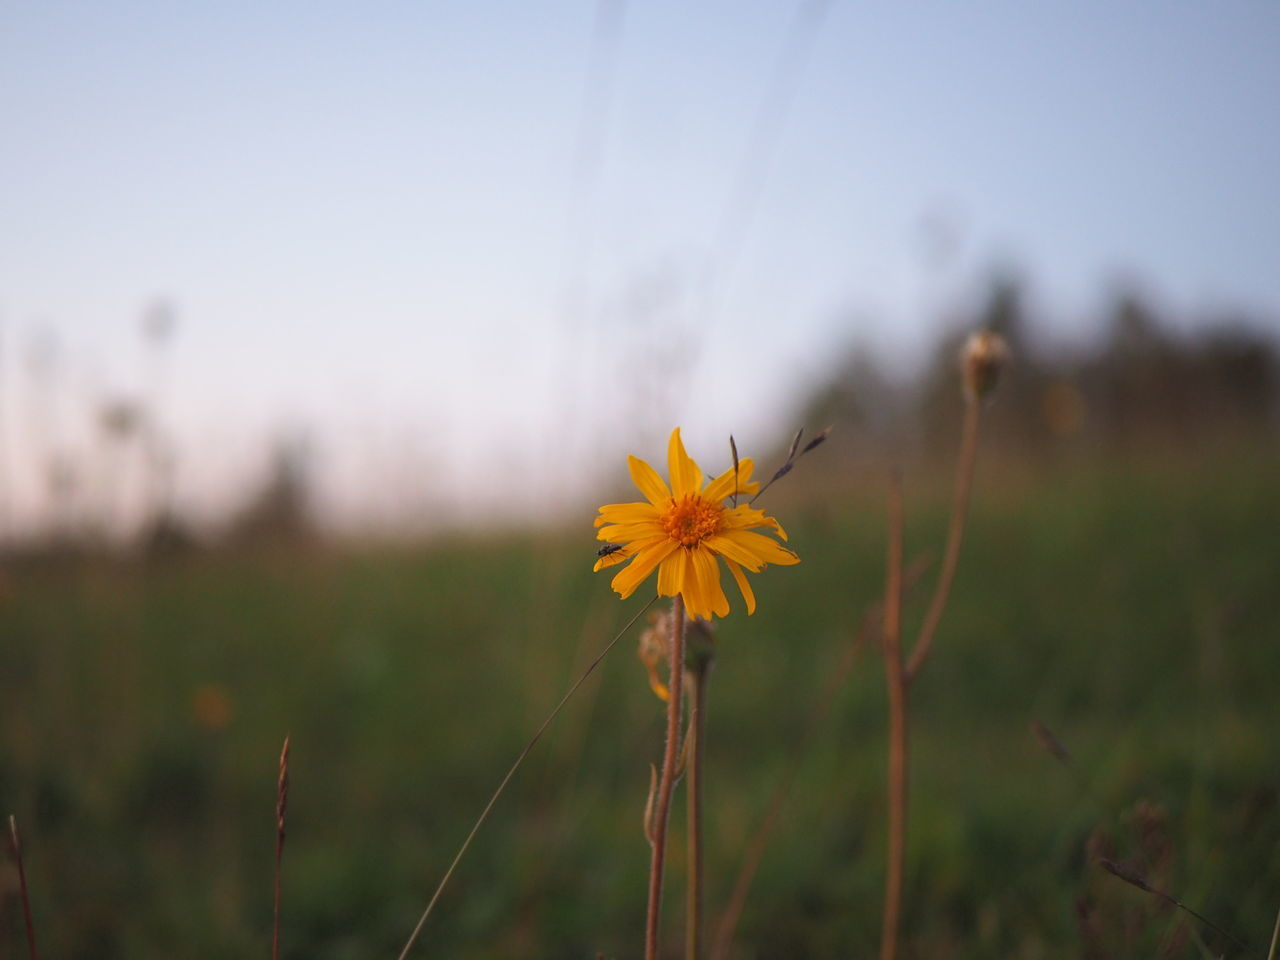 CLOSE-UP OF YELLOW FLOWER ON FIELD AGAINST SKY